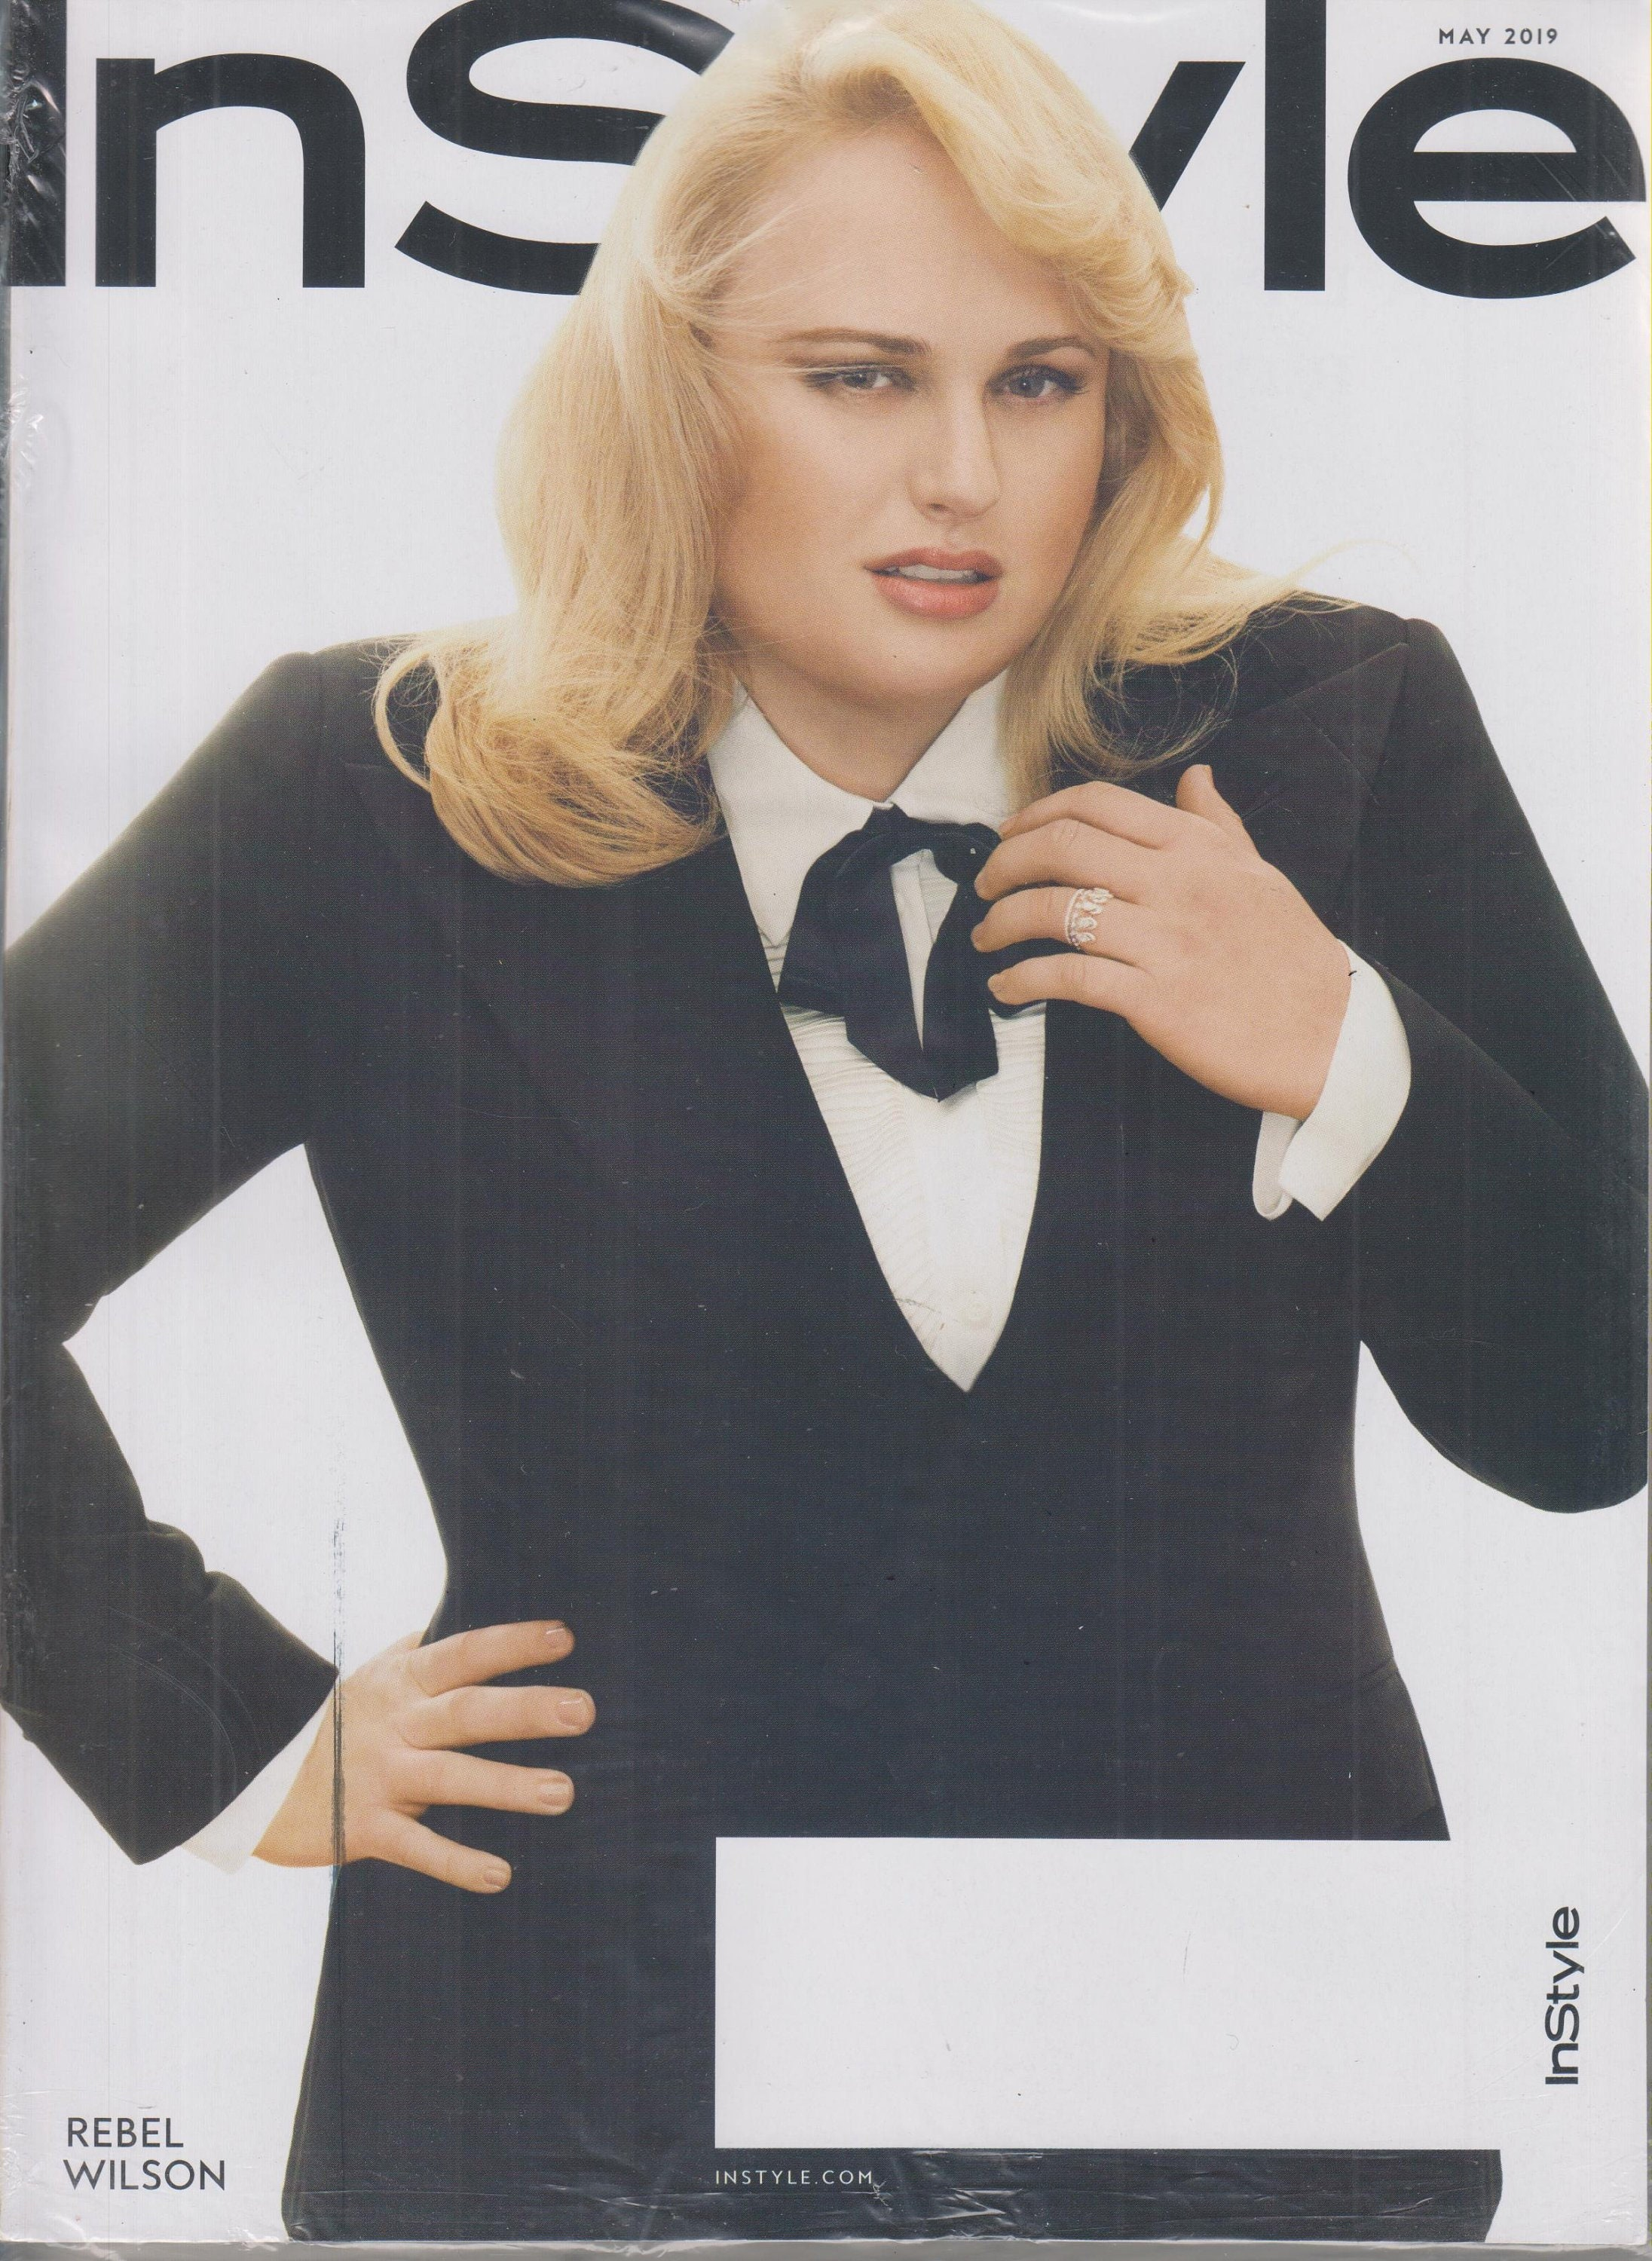 ab8aab113e2 In Style May 2019 Rebel Wilson (Magazine  Fashion)